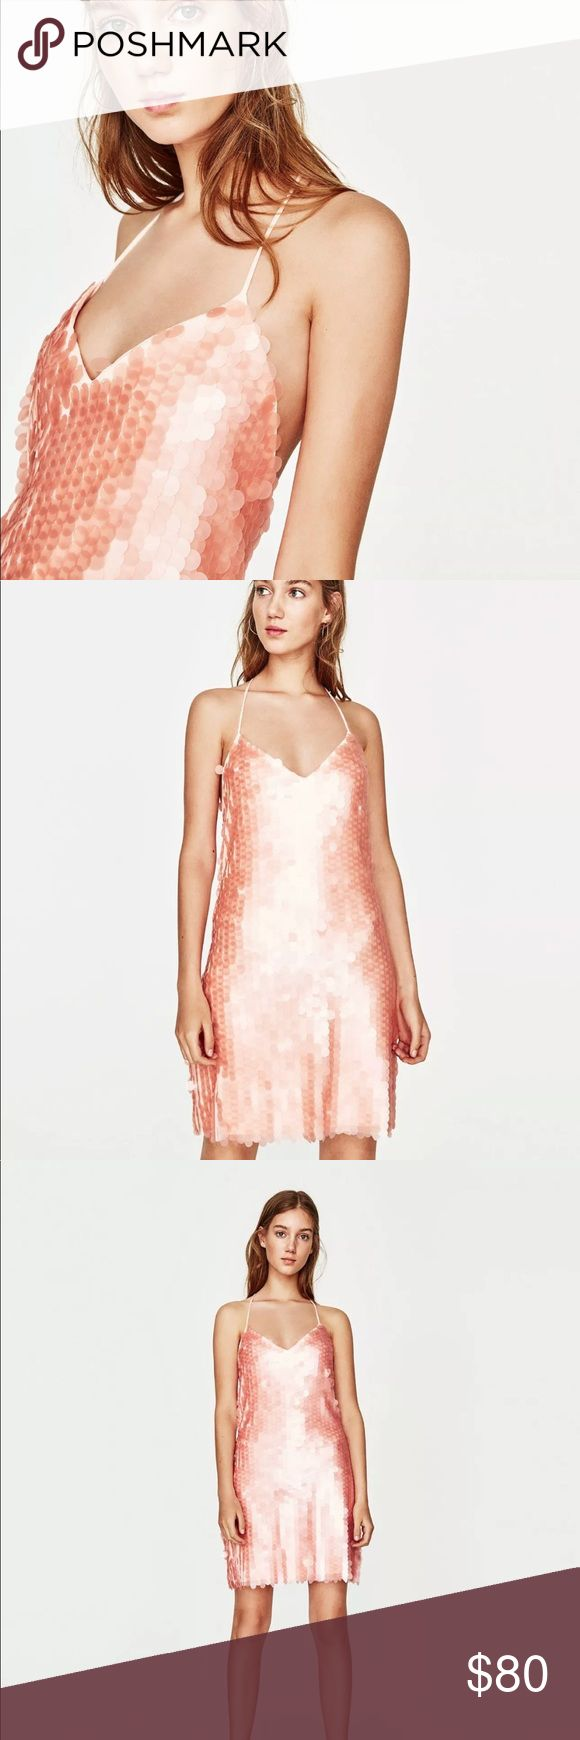 NWT Zara Coral Pink Matte Sequin T-back Dress A true show stopper!!! V-neck dress falling just above the knee with thin straps, T-straps in the back and matte sequins.  This item has a large fit. We recommend you buy a size smaller than your usual size. Zara Dresses Mini